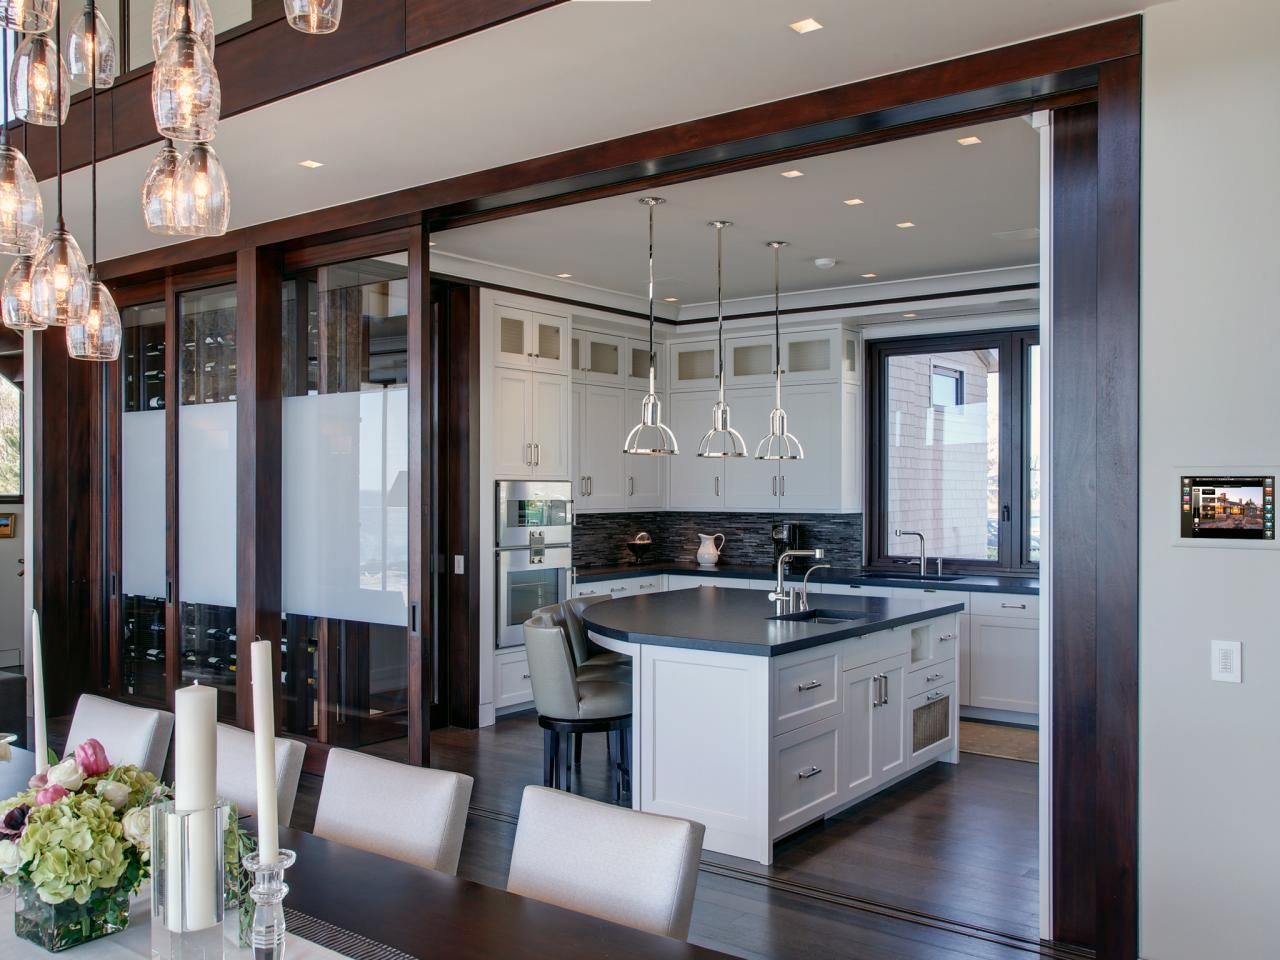 A Sleek Open Kitchen Is Connected To The Dining Room Via Sliding Glass Doors